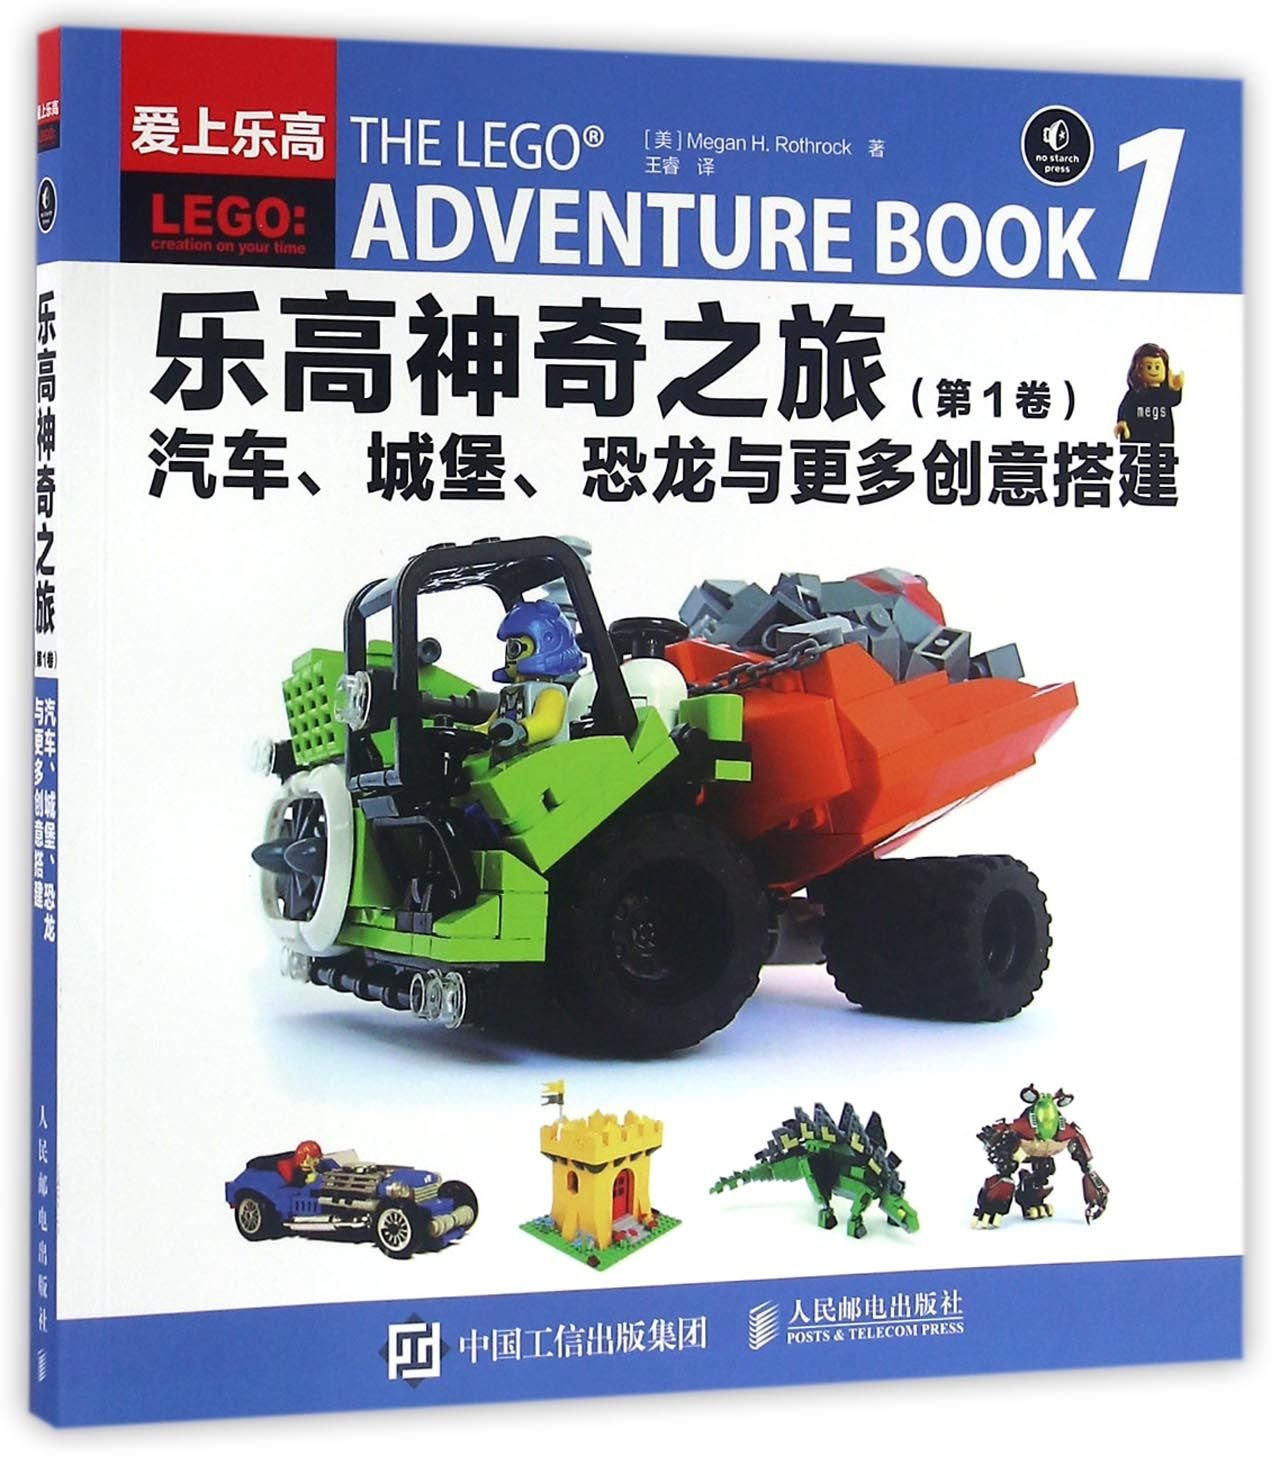 Download The LEGO Adventure Book, Vol. 1: Cars, Castles, Dinosaurs & More! (Chinese Edition) PDF